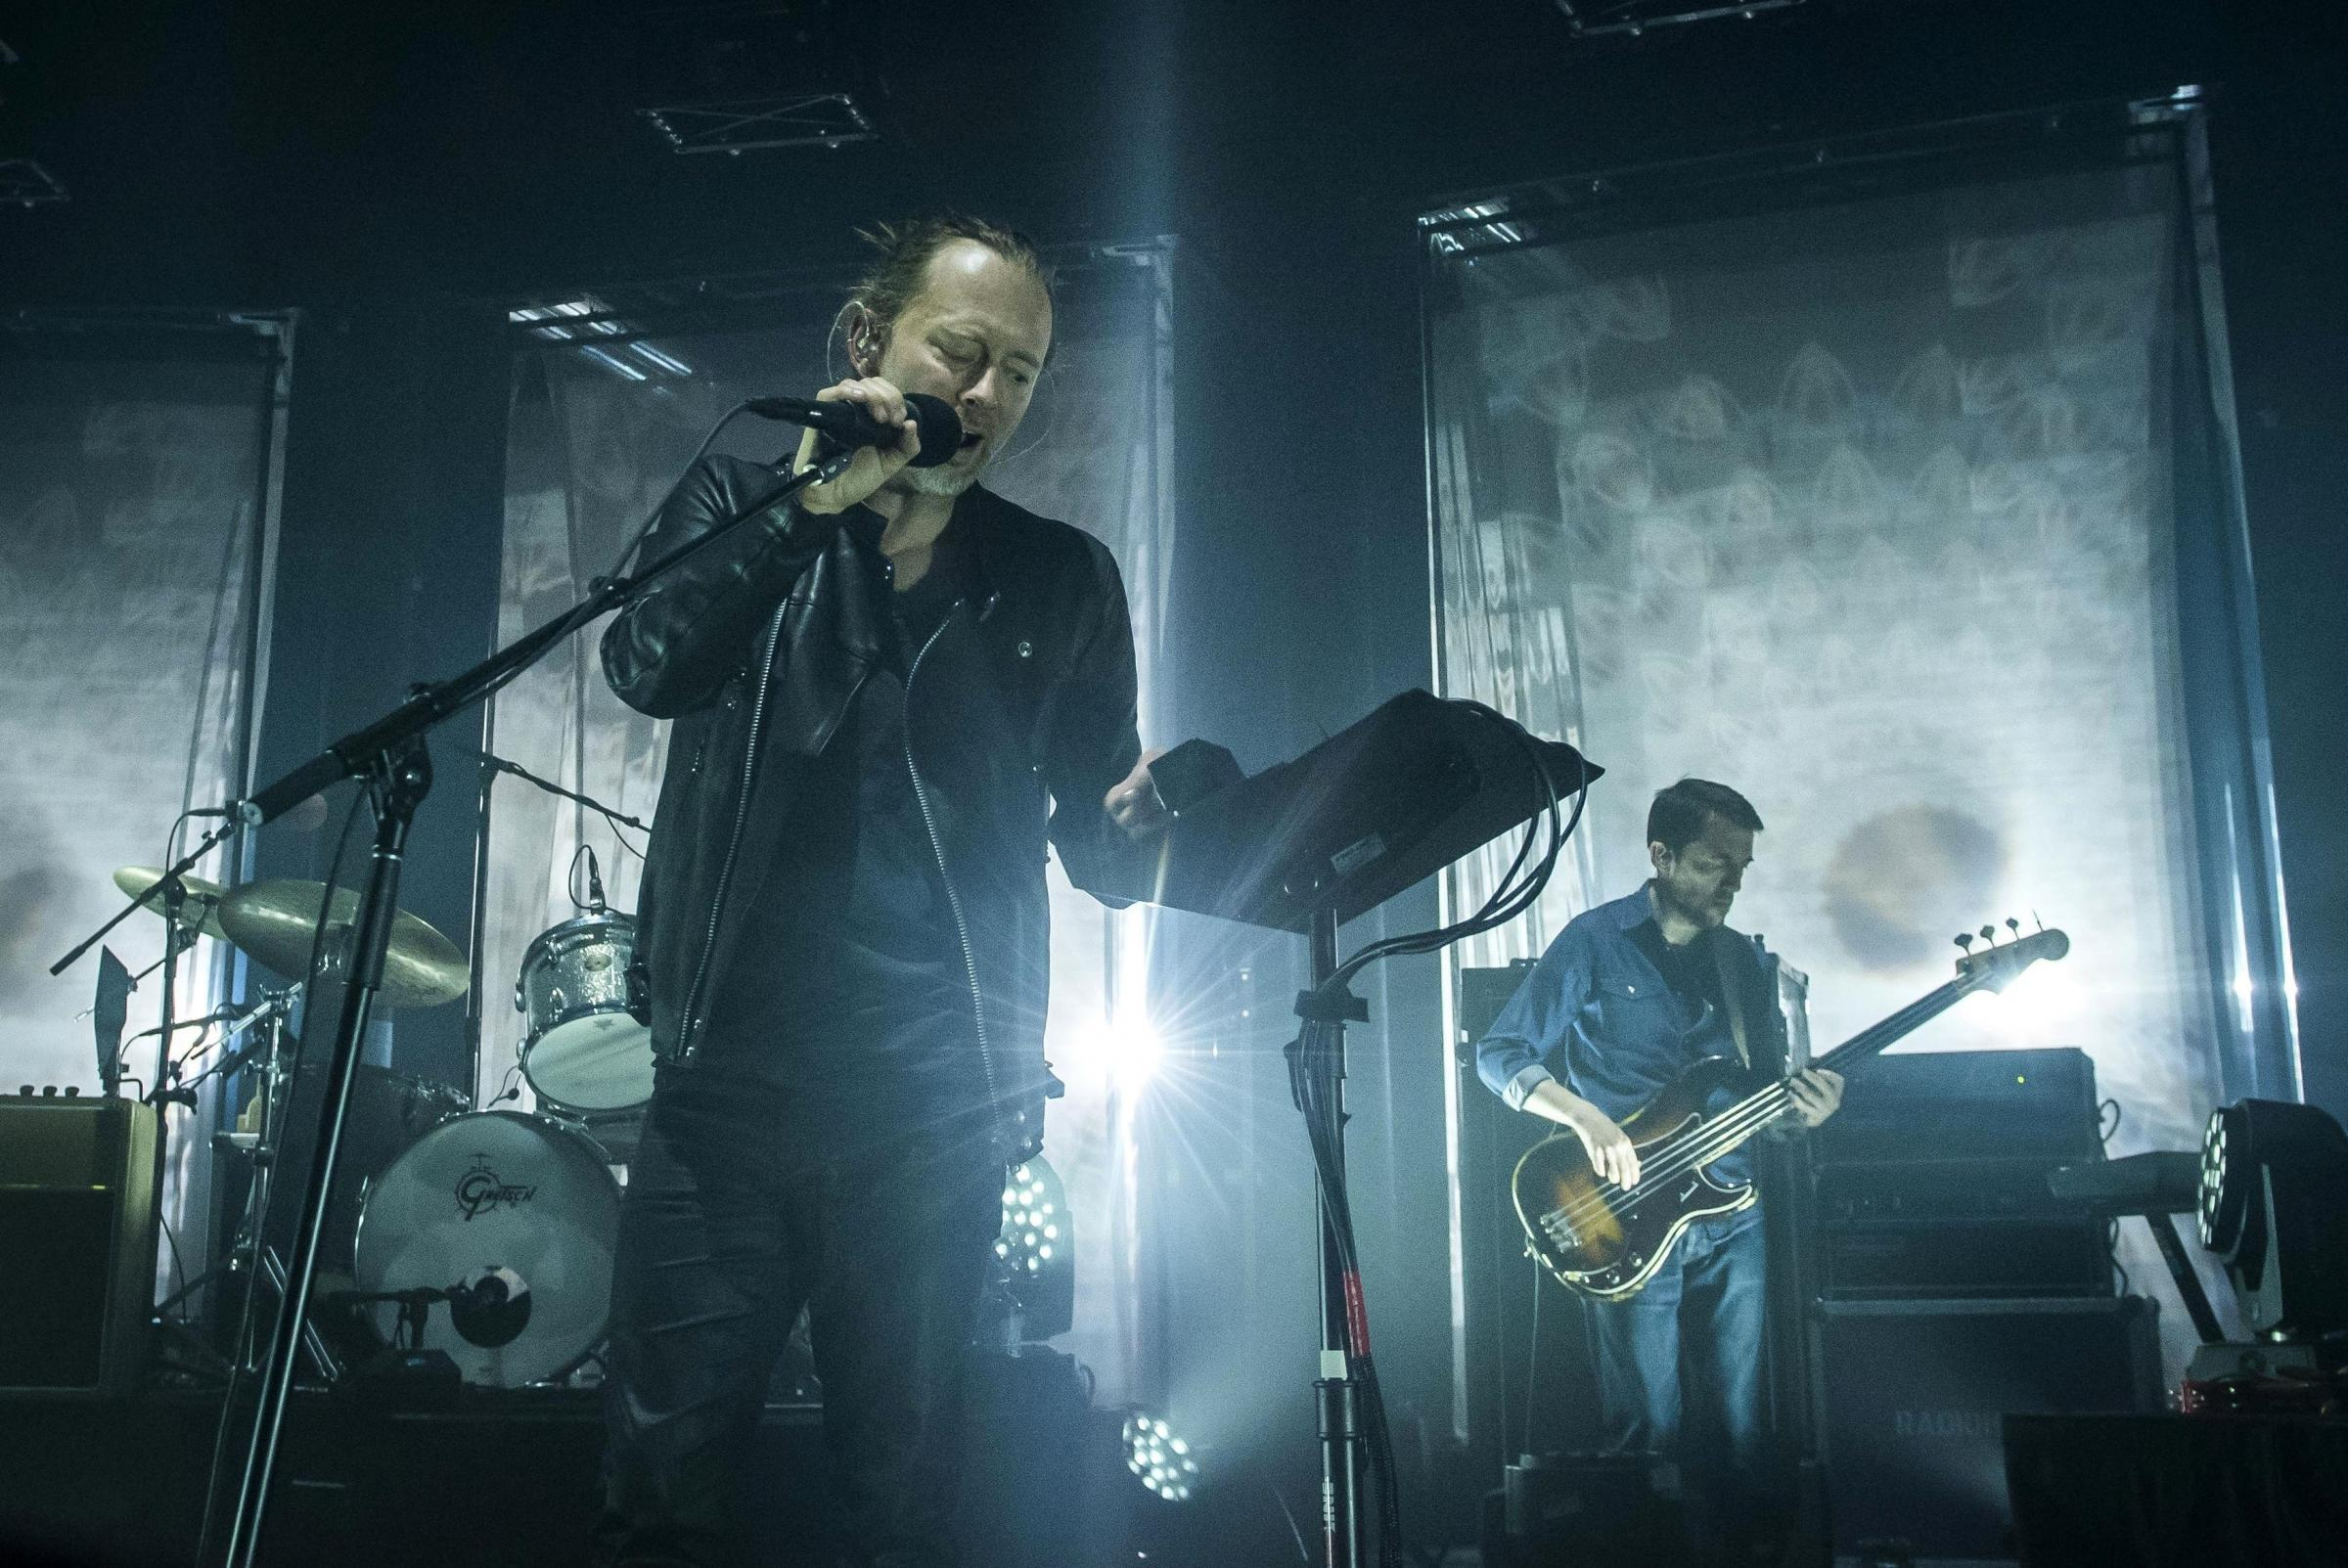 Radiohead perform on stage at the Roundhouse, in Chalk Farm, London. PRESS ASSOCIATION Photo. Picture date: Thursday May 26, 2016. Photo credit should read: David Jensen/PA Wire.